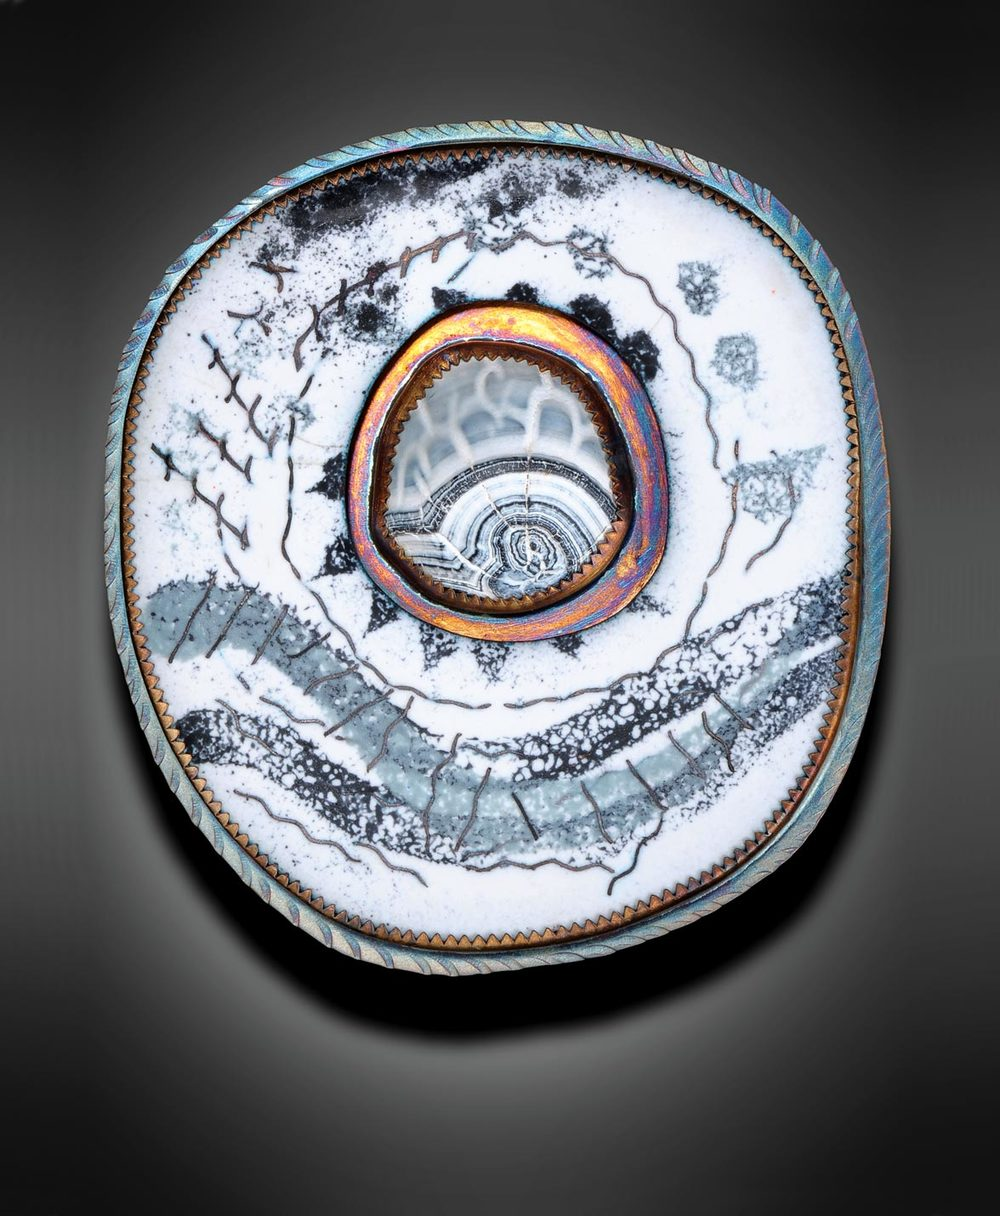 BROOCH of sterling silver, acid-etched agate and enamel, 5.08 x 5.08 centimeters, 2015.